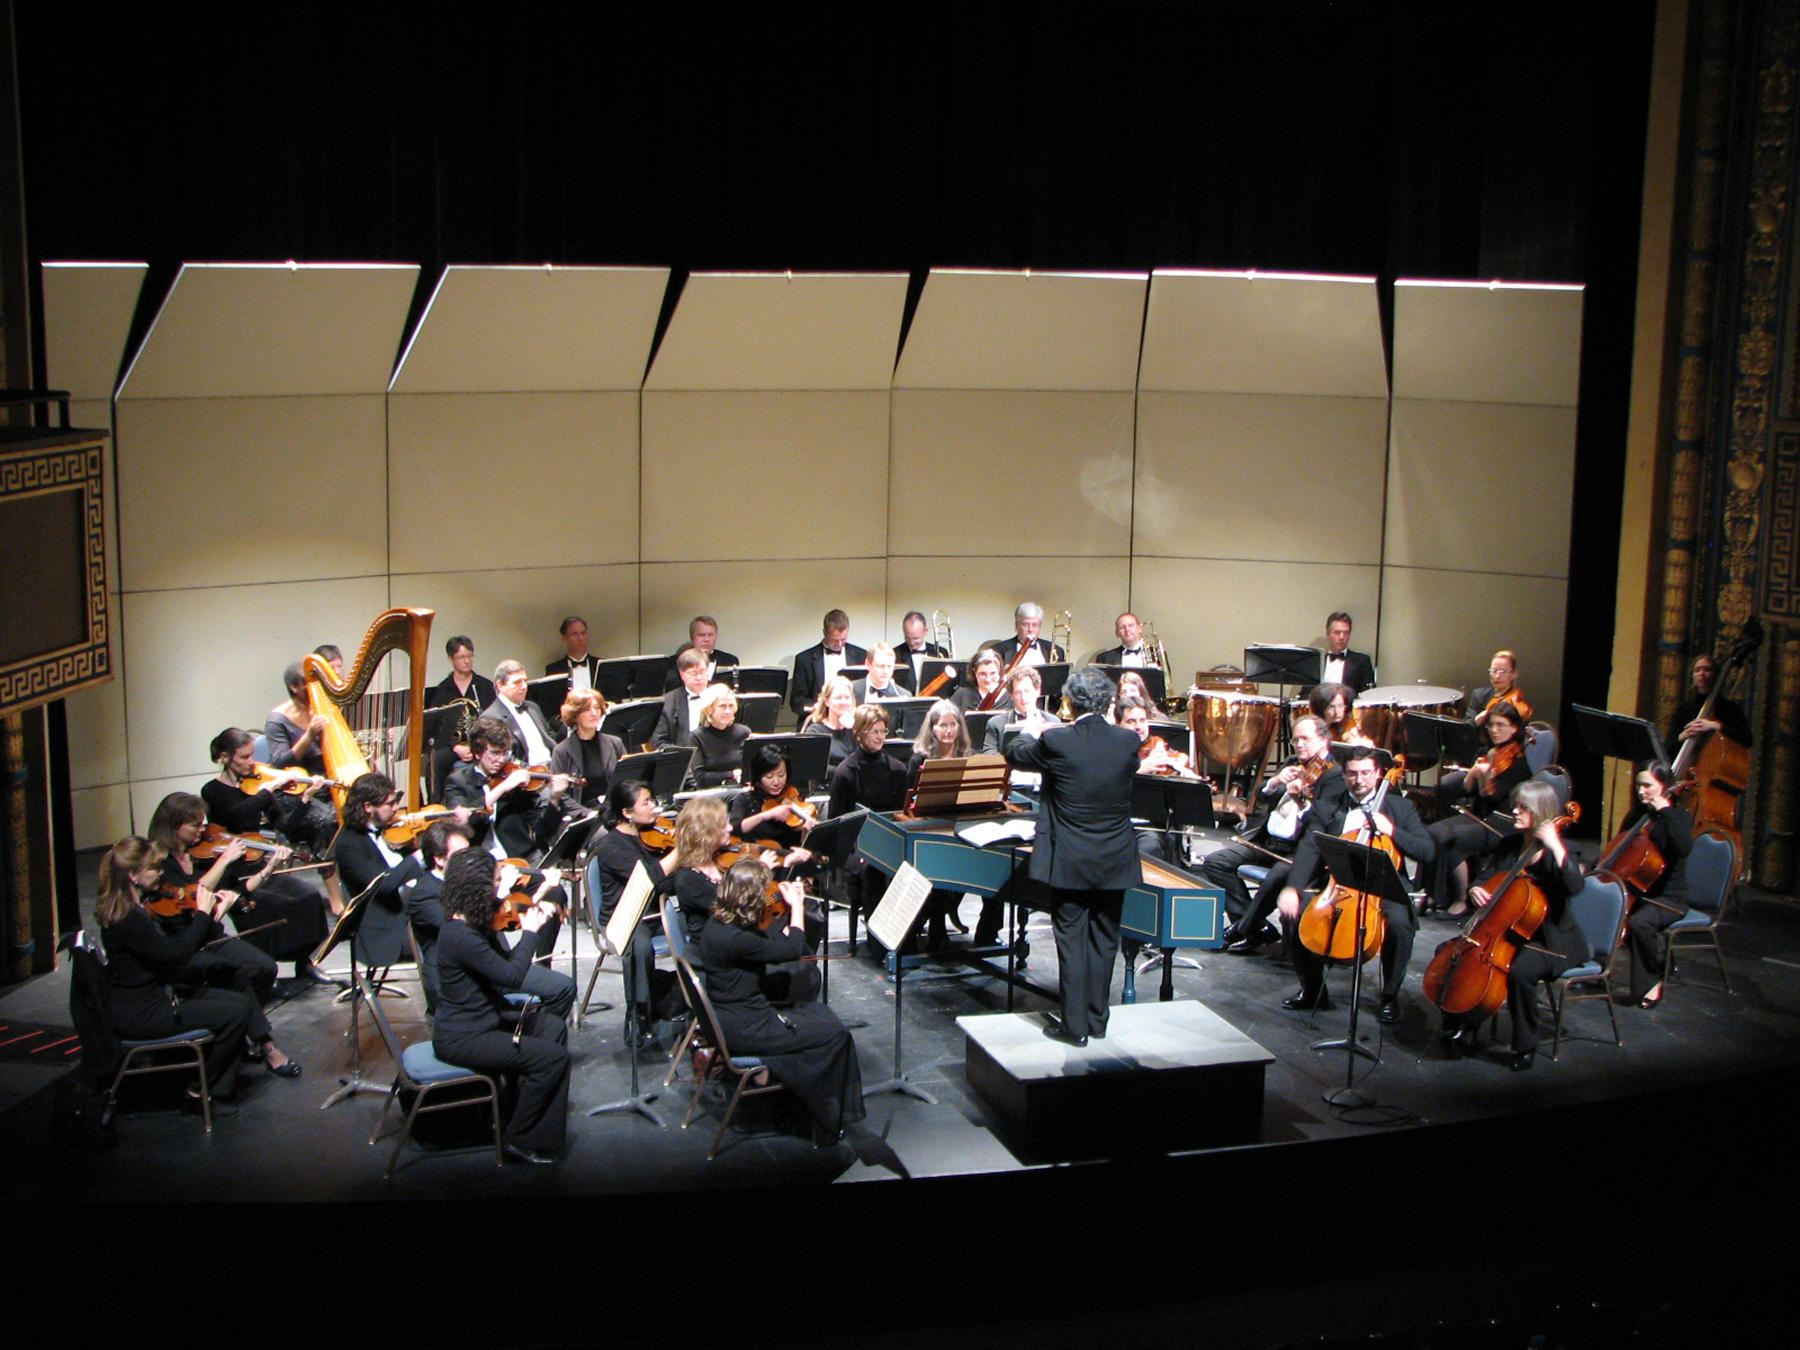 Heralded young cellist performs with chamber orchestra of for Chambre orchestra